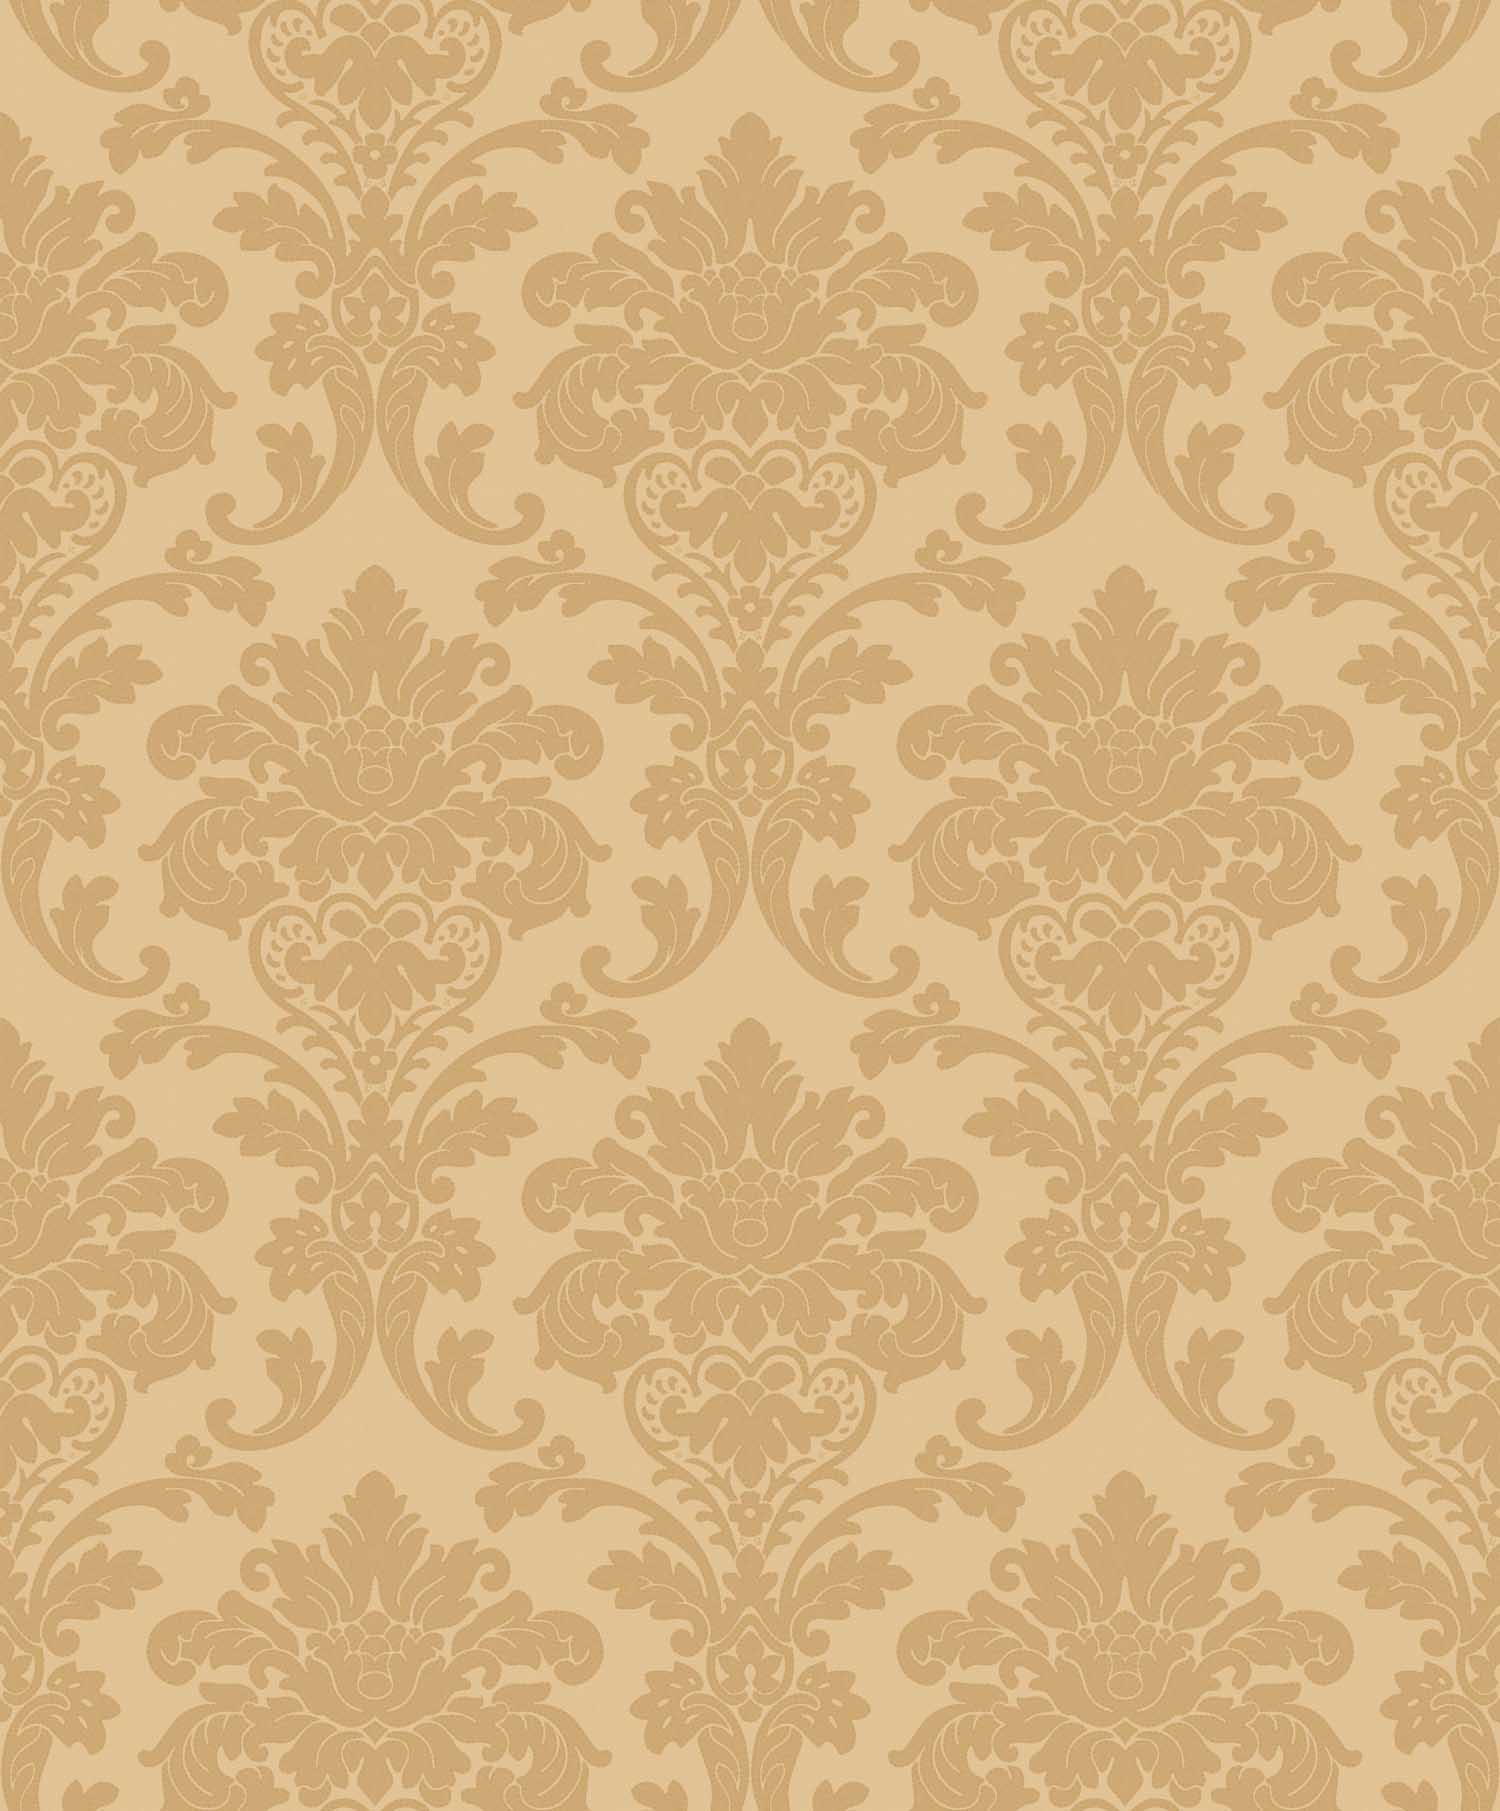 Paper Wallpaper Gold Leaf Suppliers Provence Oriental Style Modern